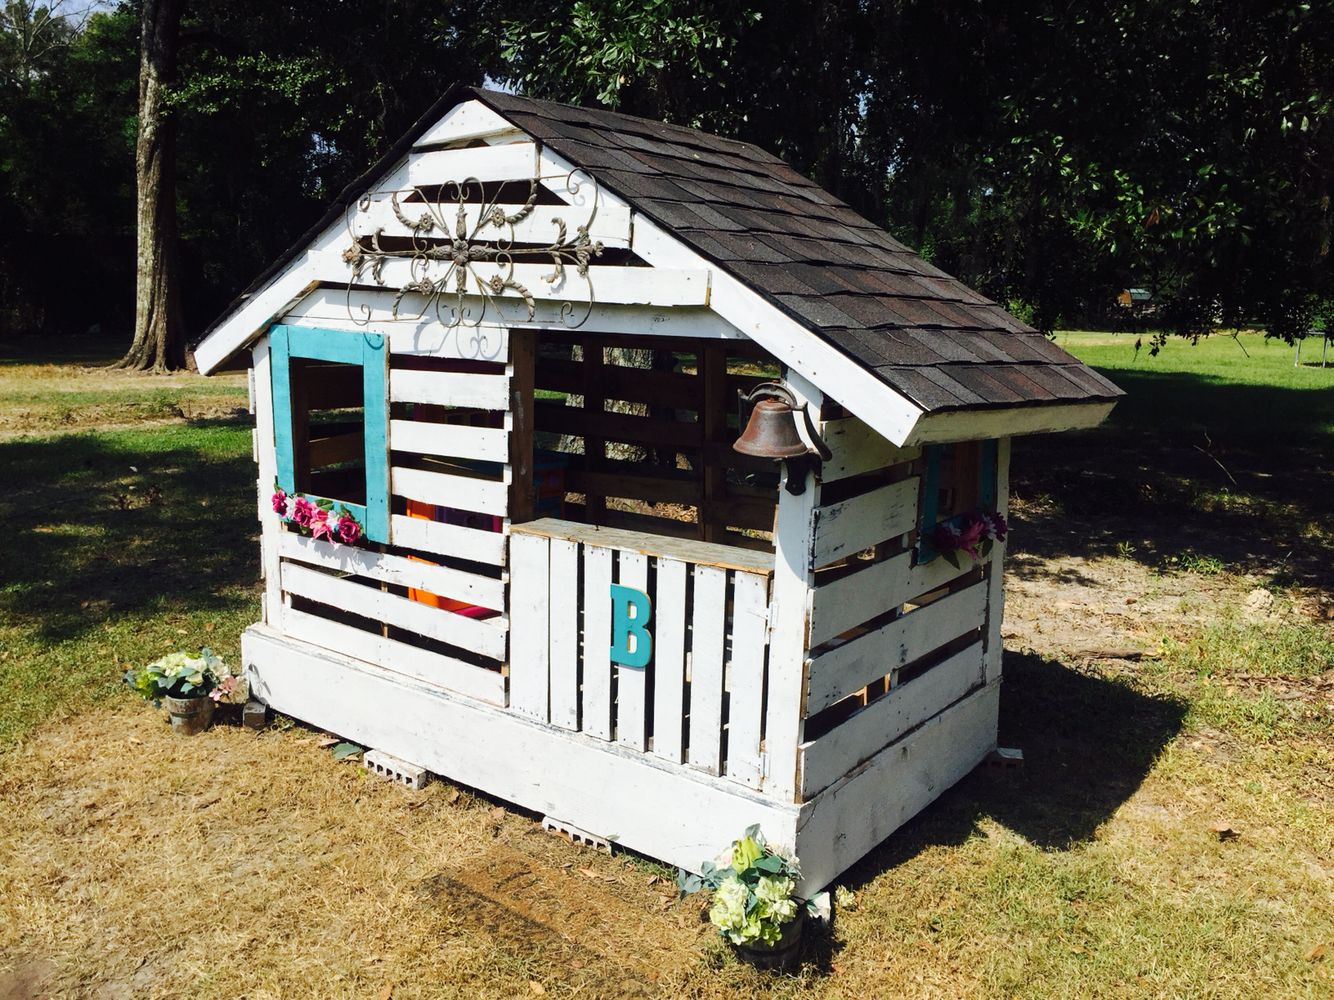 Summertime Project Build A Playhouse For Your Kids Pallet